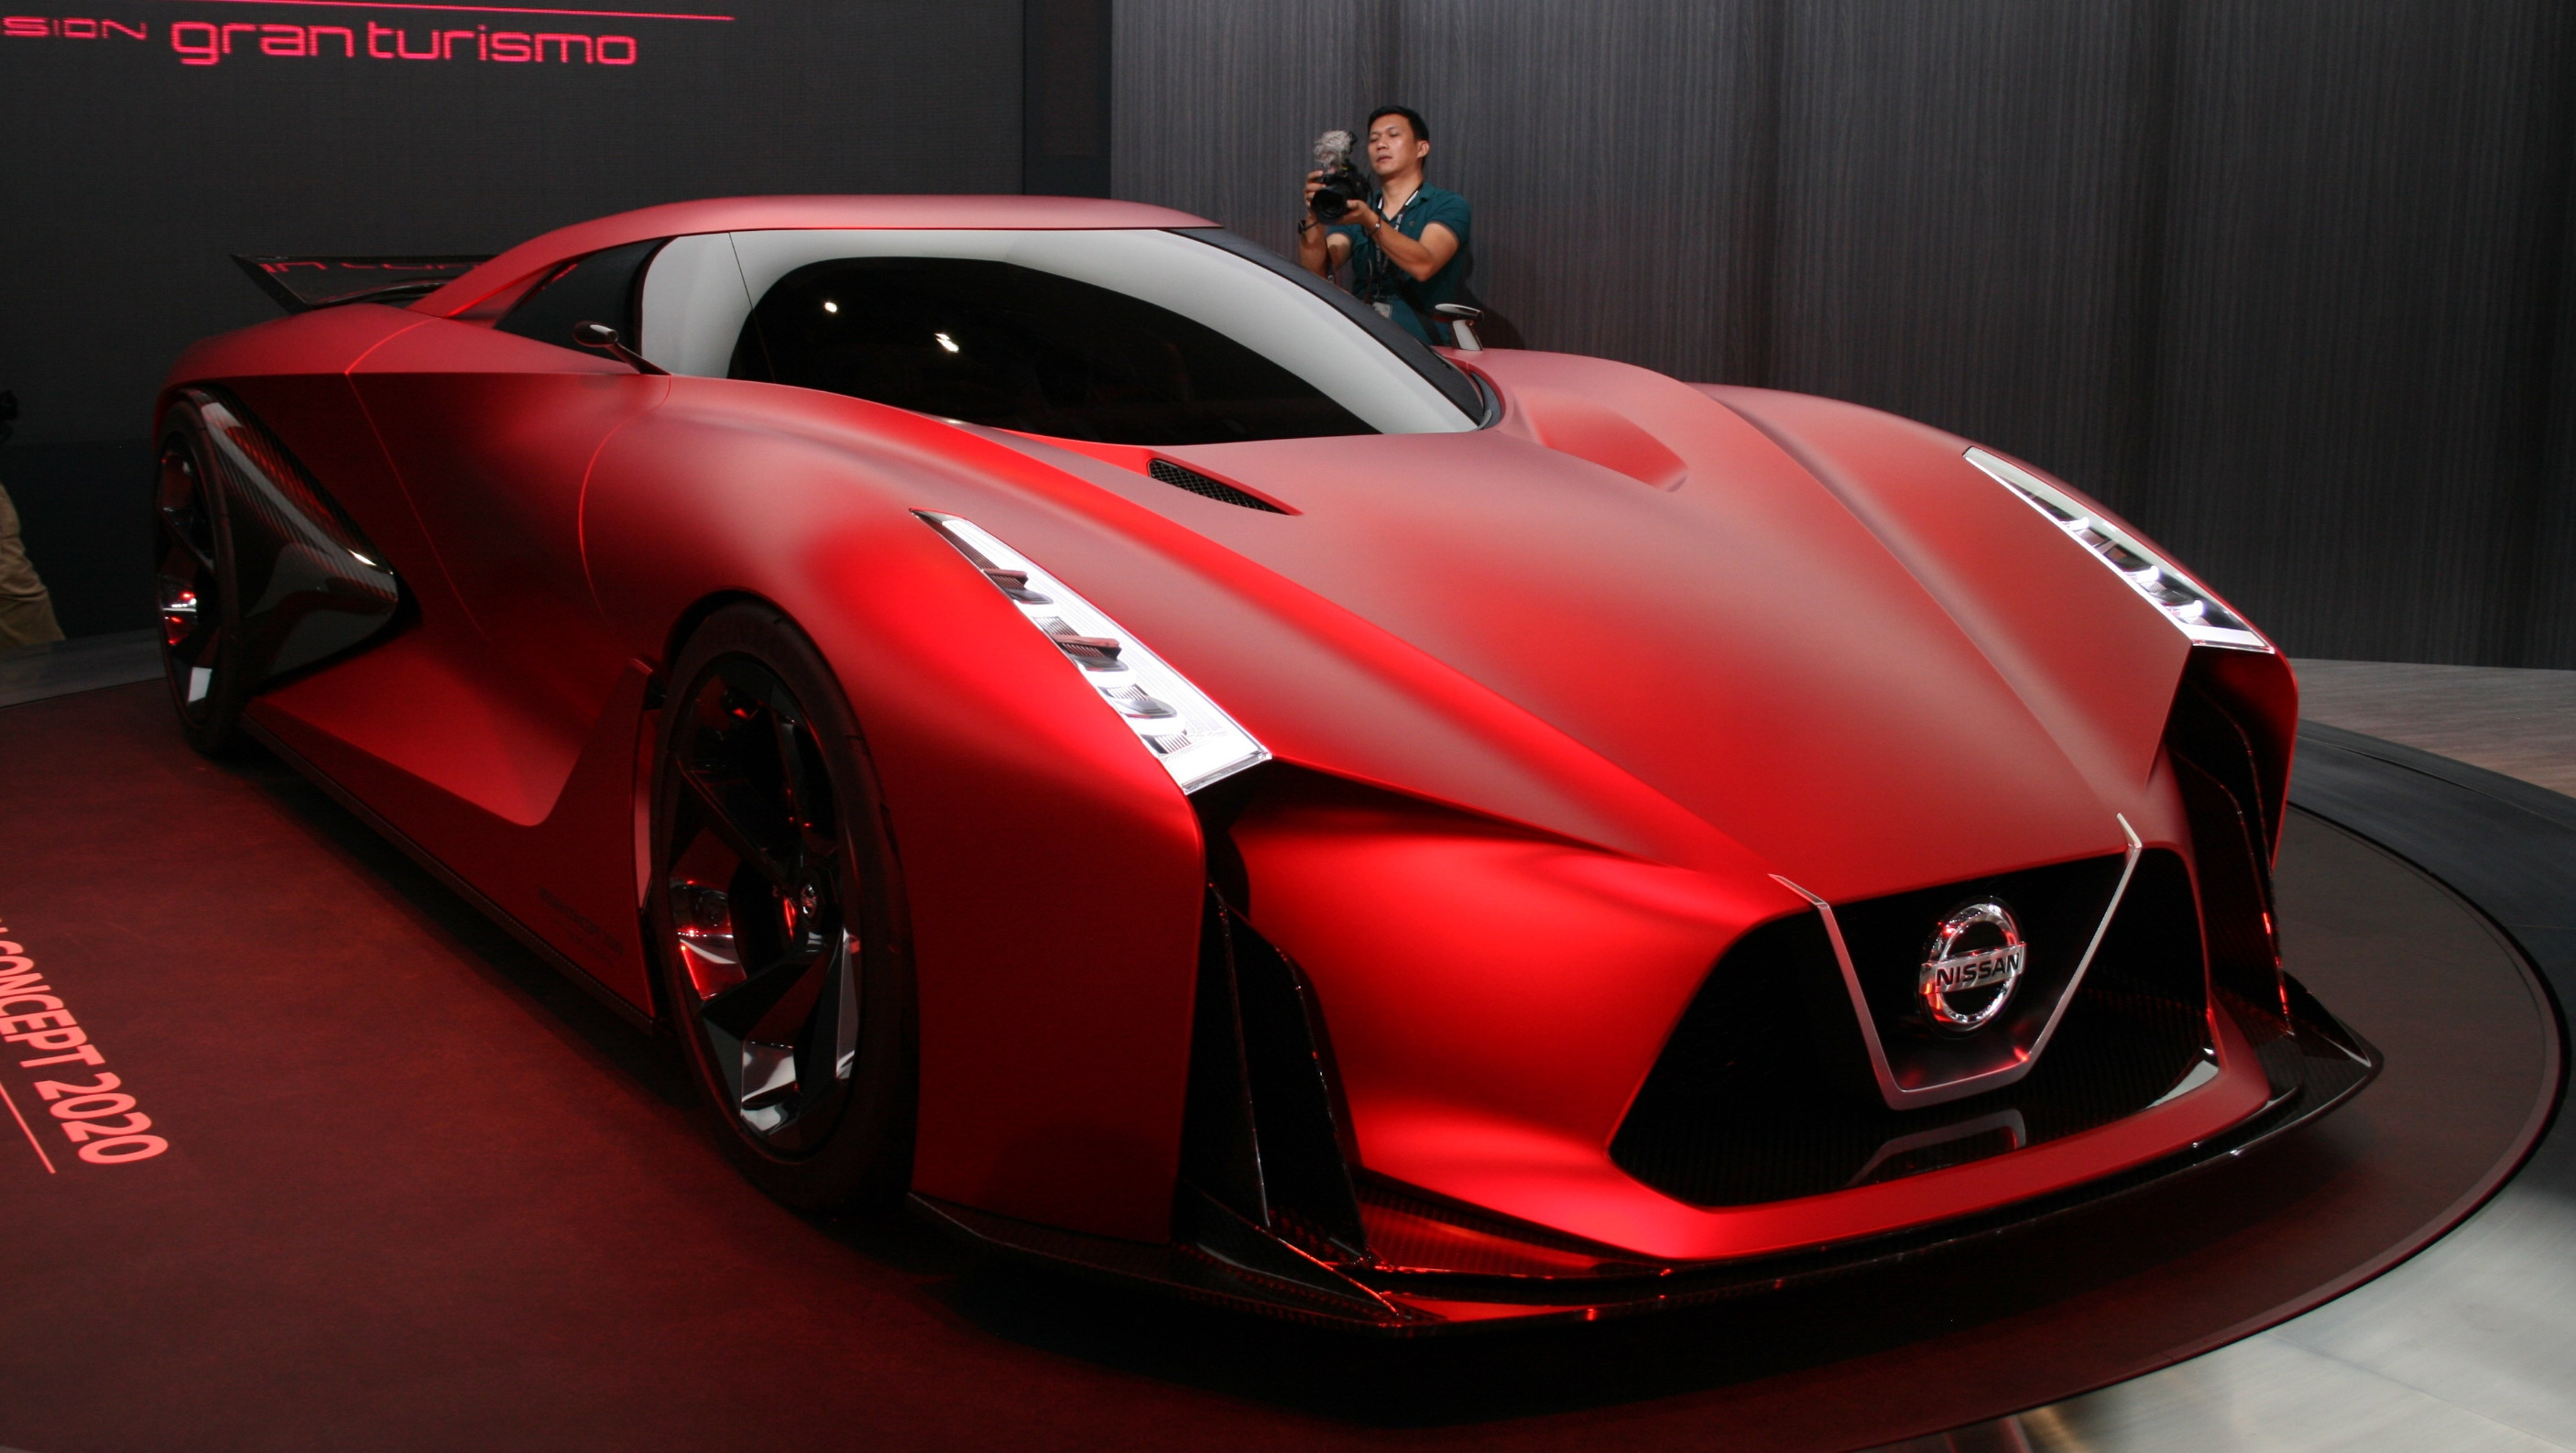 2014 Nissan Concept 2020 Vision Gran Turismo | Top Speed